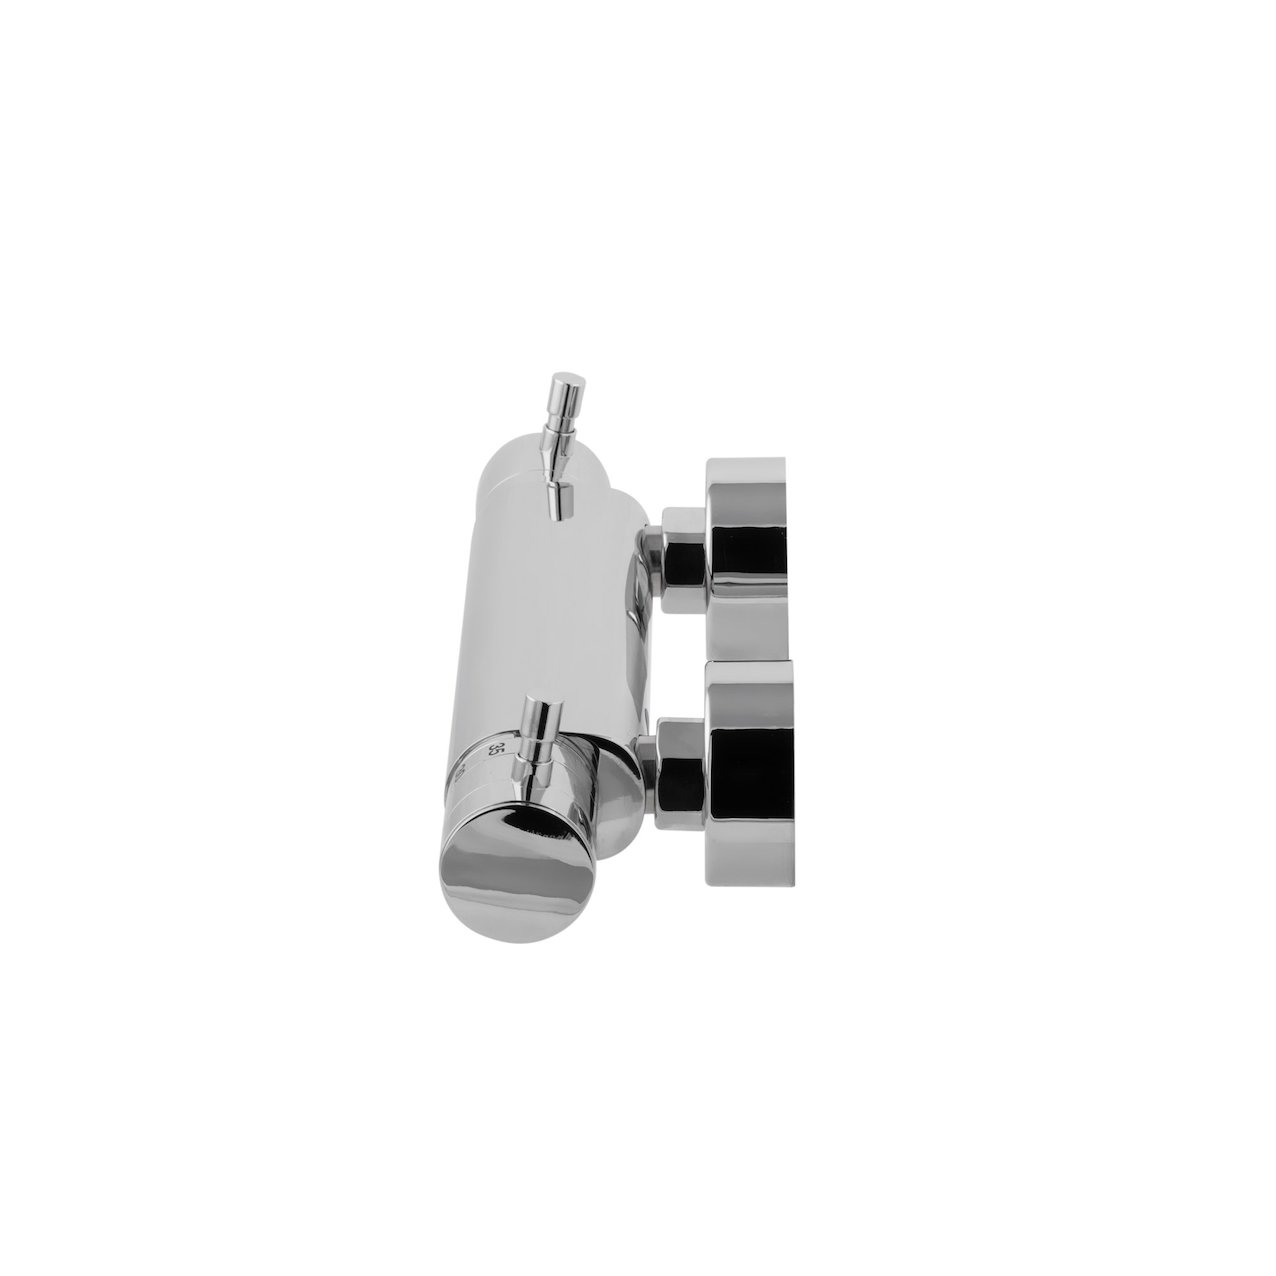 Thermostatic wall shower mixer - 360 - 0